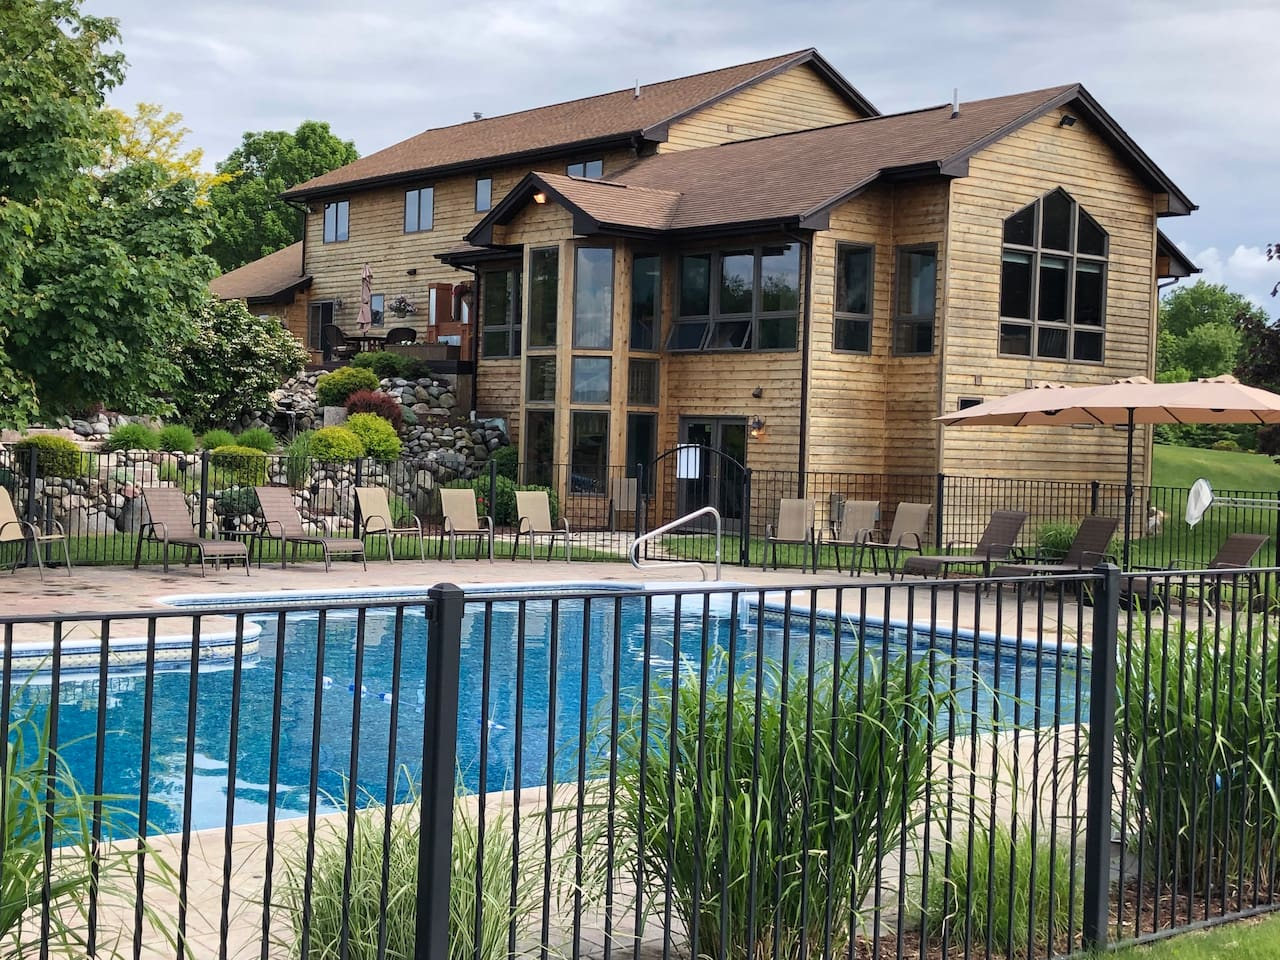 Heated pool with diving board, jacuzzi seats, turbo slide, underwater lights, child proof gate. Seating for twenty, shallow area roped off for non swimmers. Deep end 10' for safe diving board use. Pool area lite for night swimming.